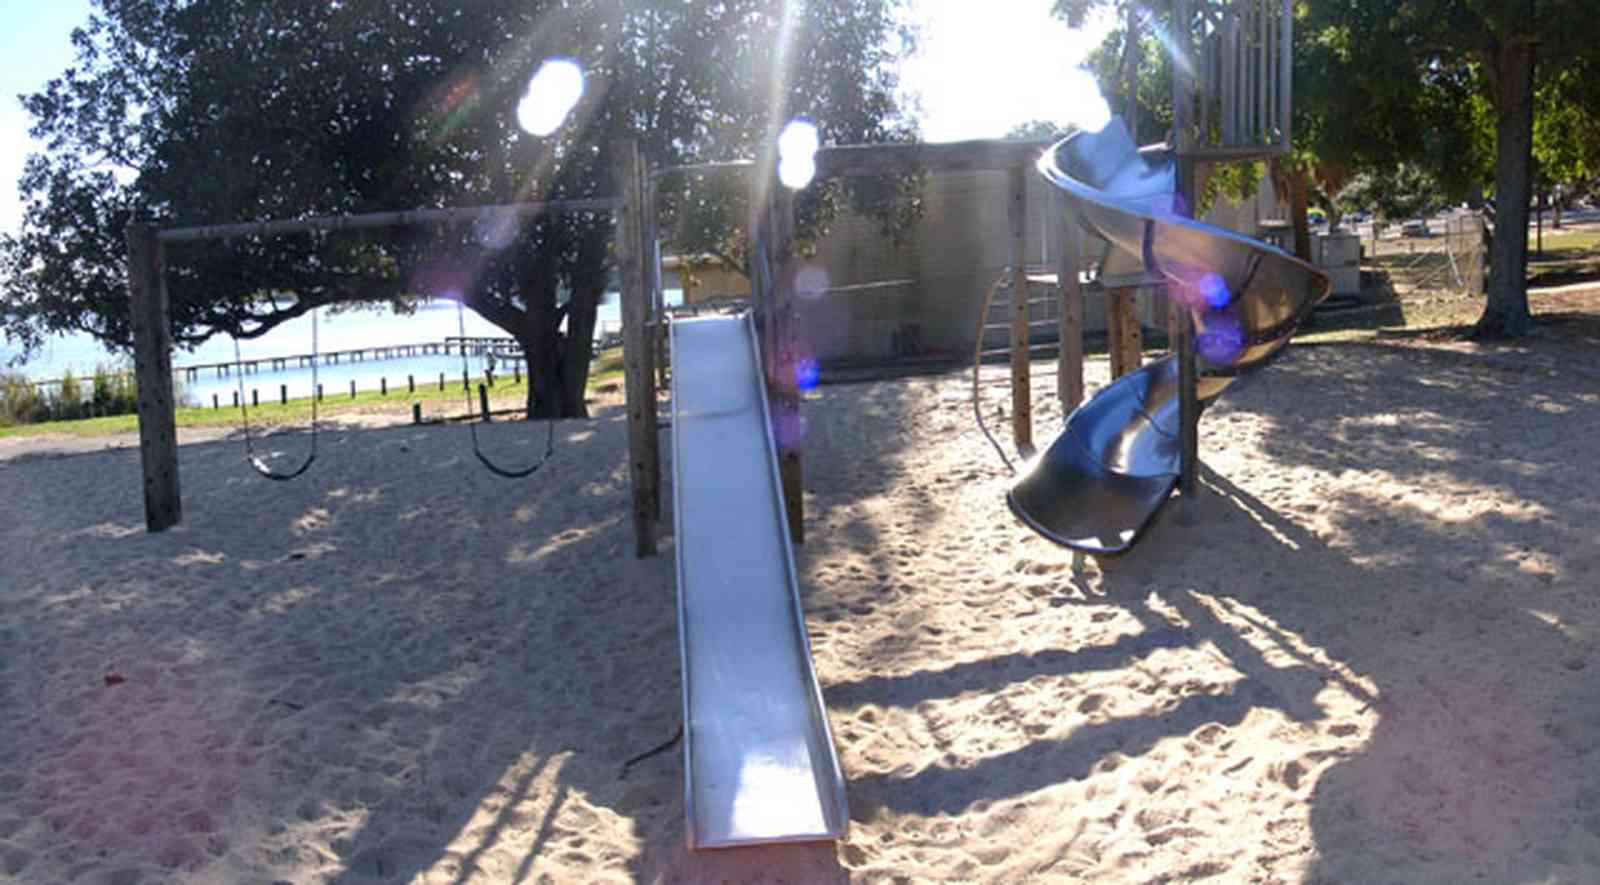 East-Hill:-Bayview-Park_10.jpg:  slide, tree house, magnolia tree, oak tree, bayou texar, escambia county, sand box, corkscrew slide, swing